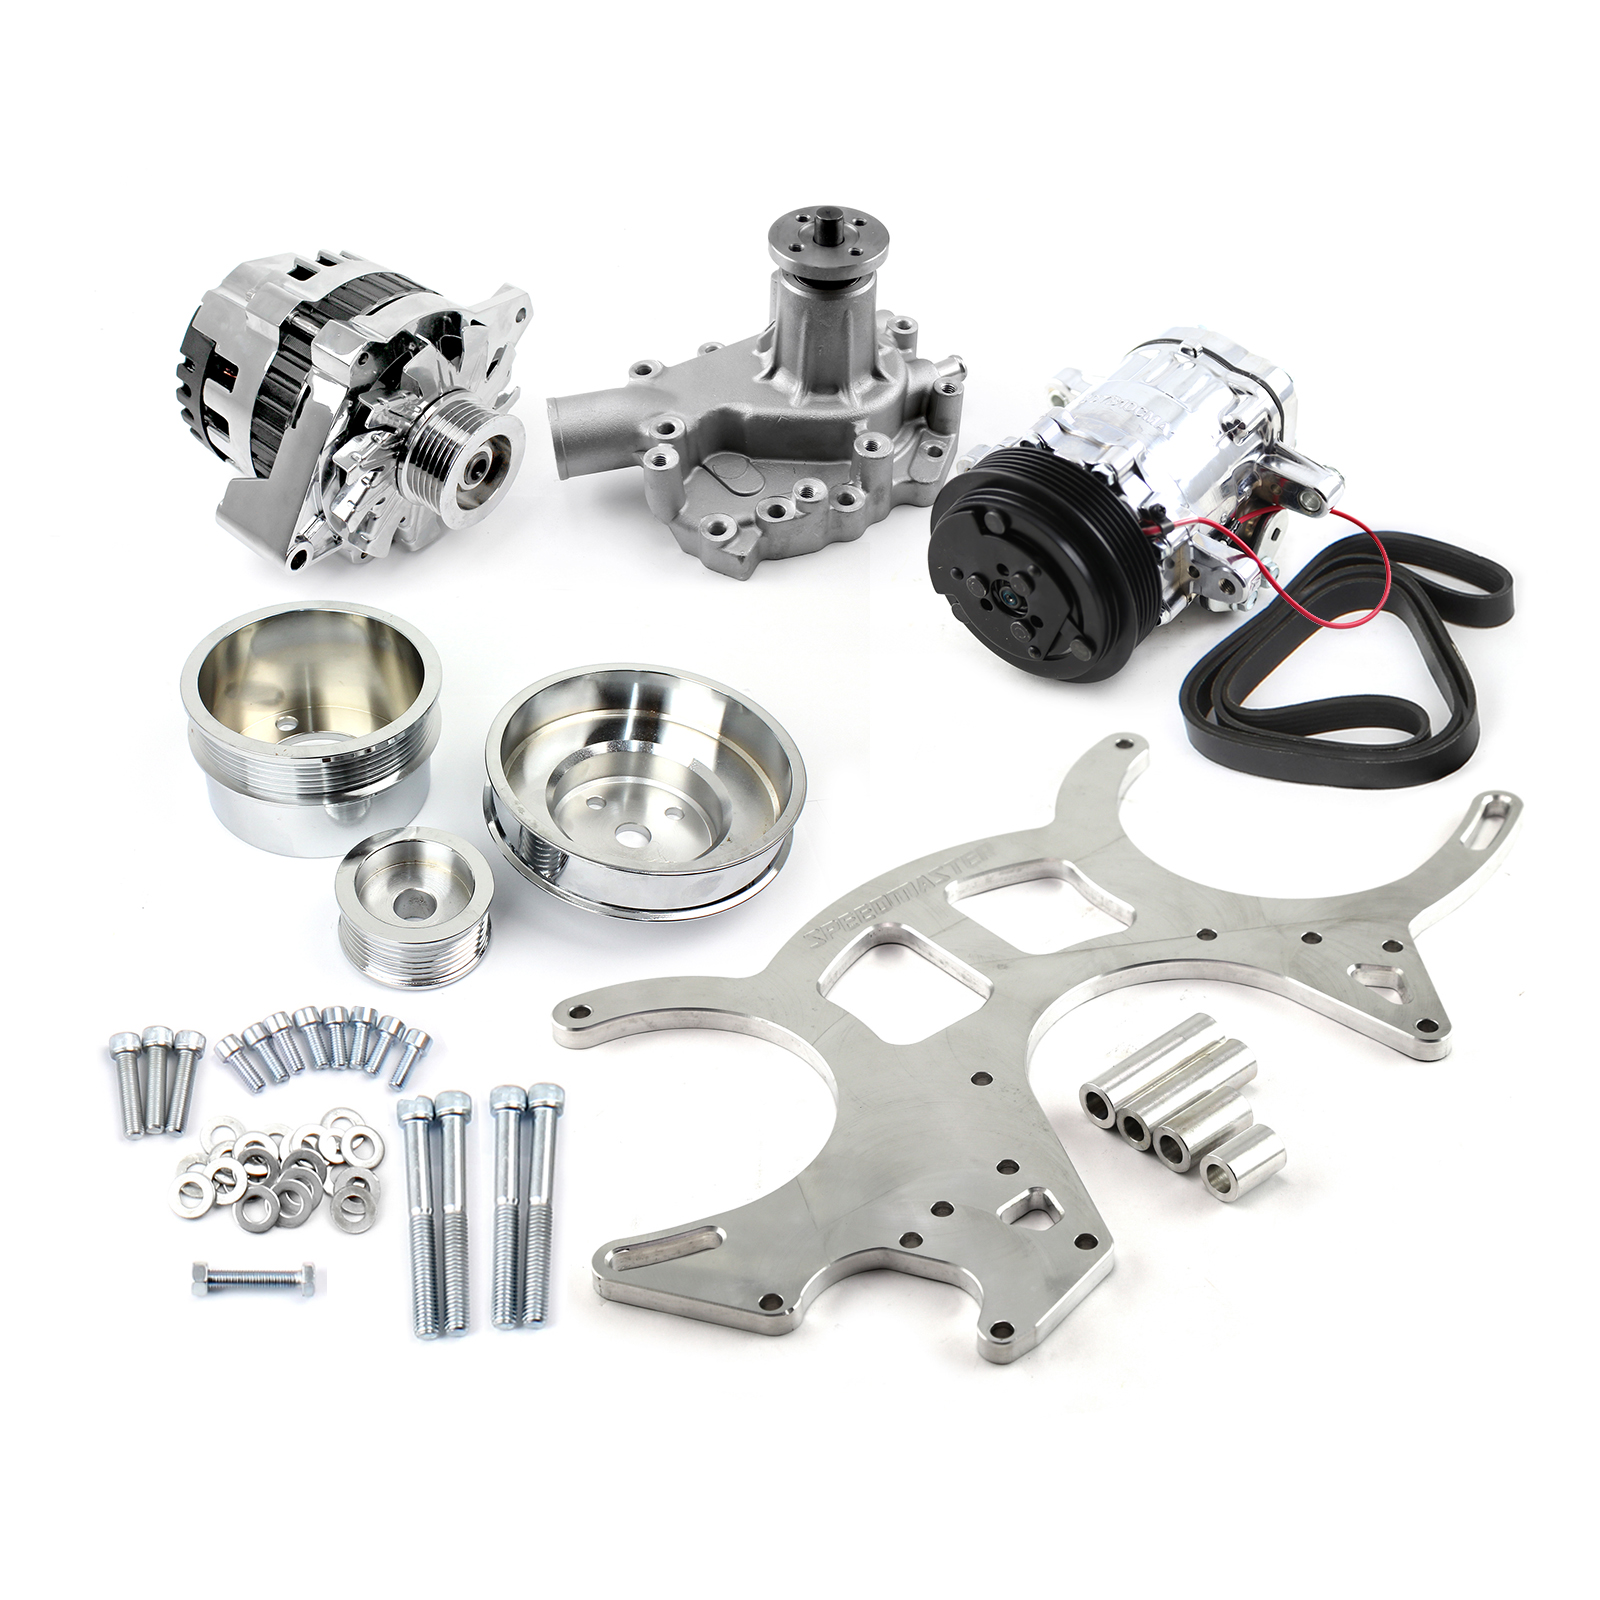 Ford Small Block 289 302 351w Billet Aluminum 20% Underdrive Serpentine Kit